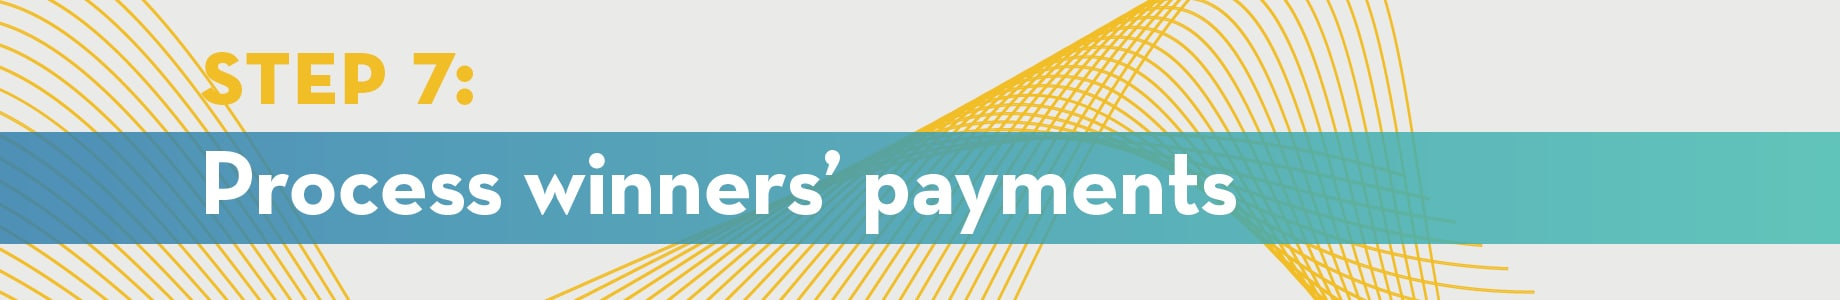 Step 7: Process winner's payments